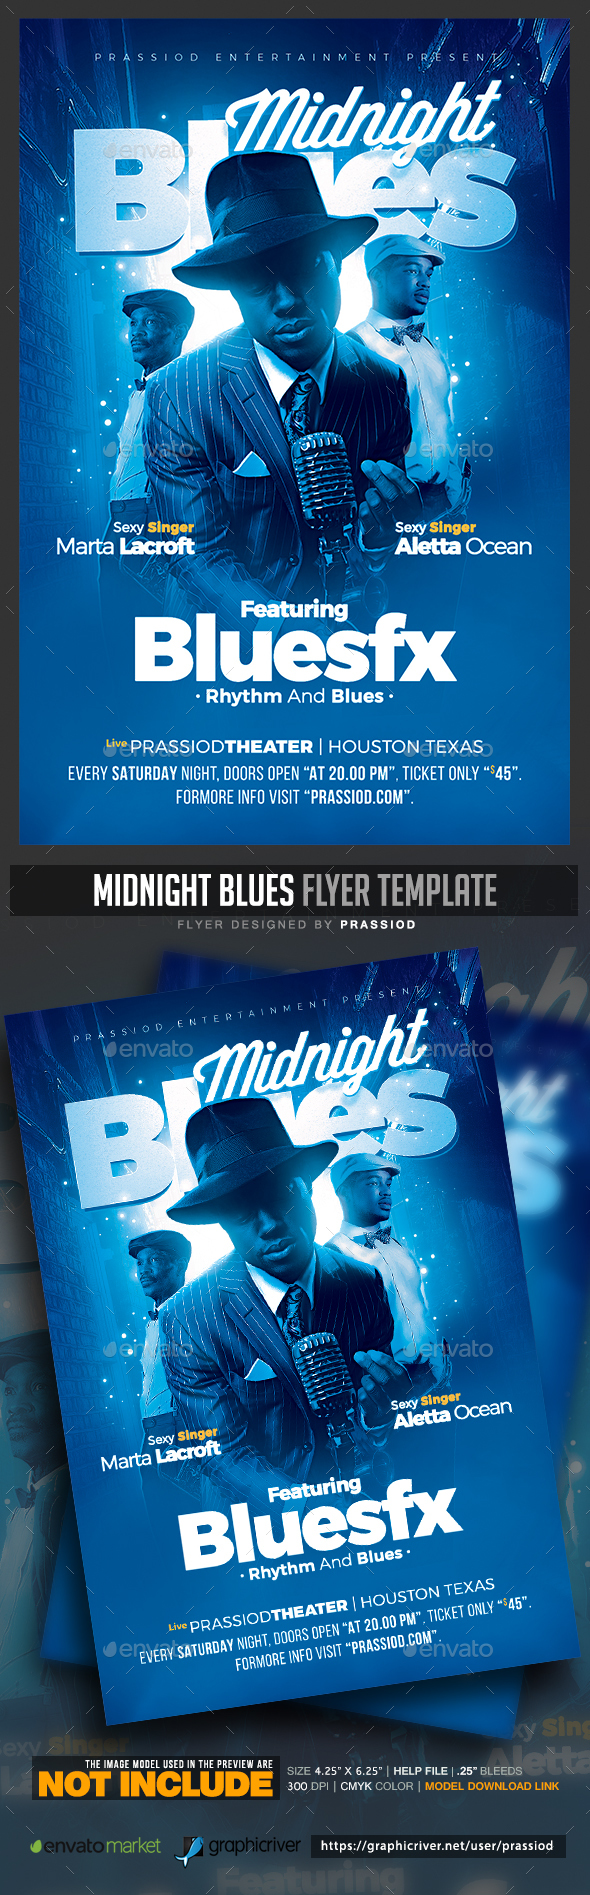 Midnight Blues Flyer Template - Concerts Events